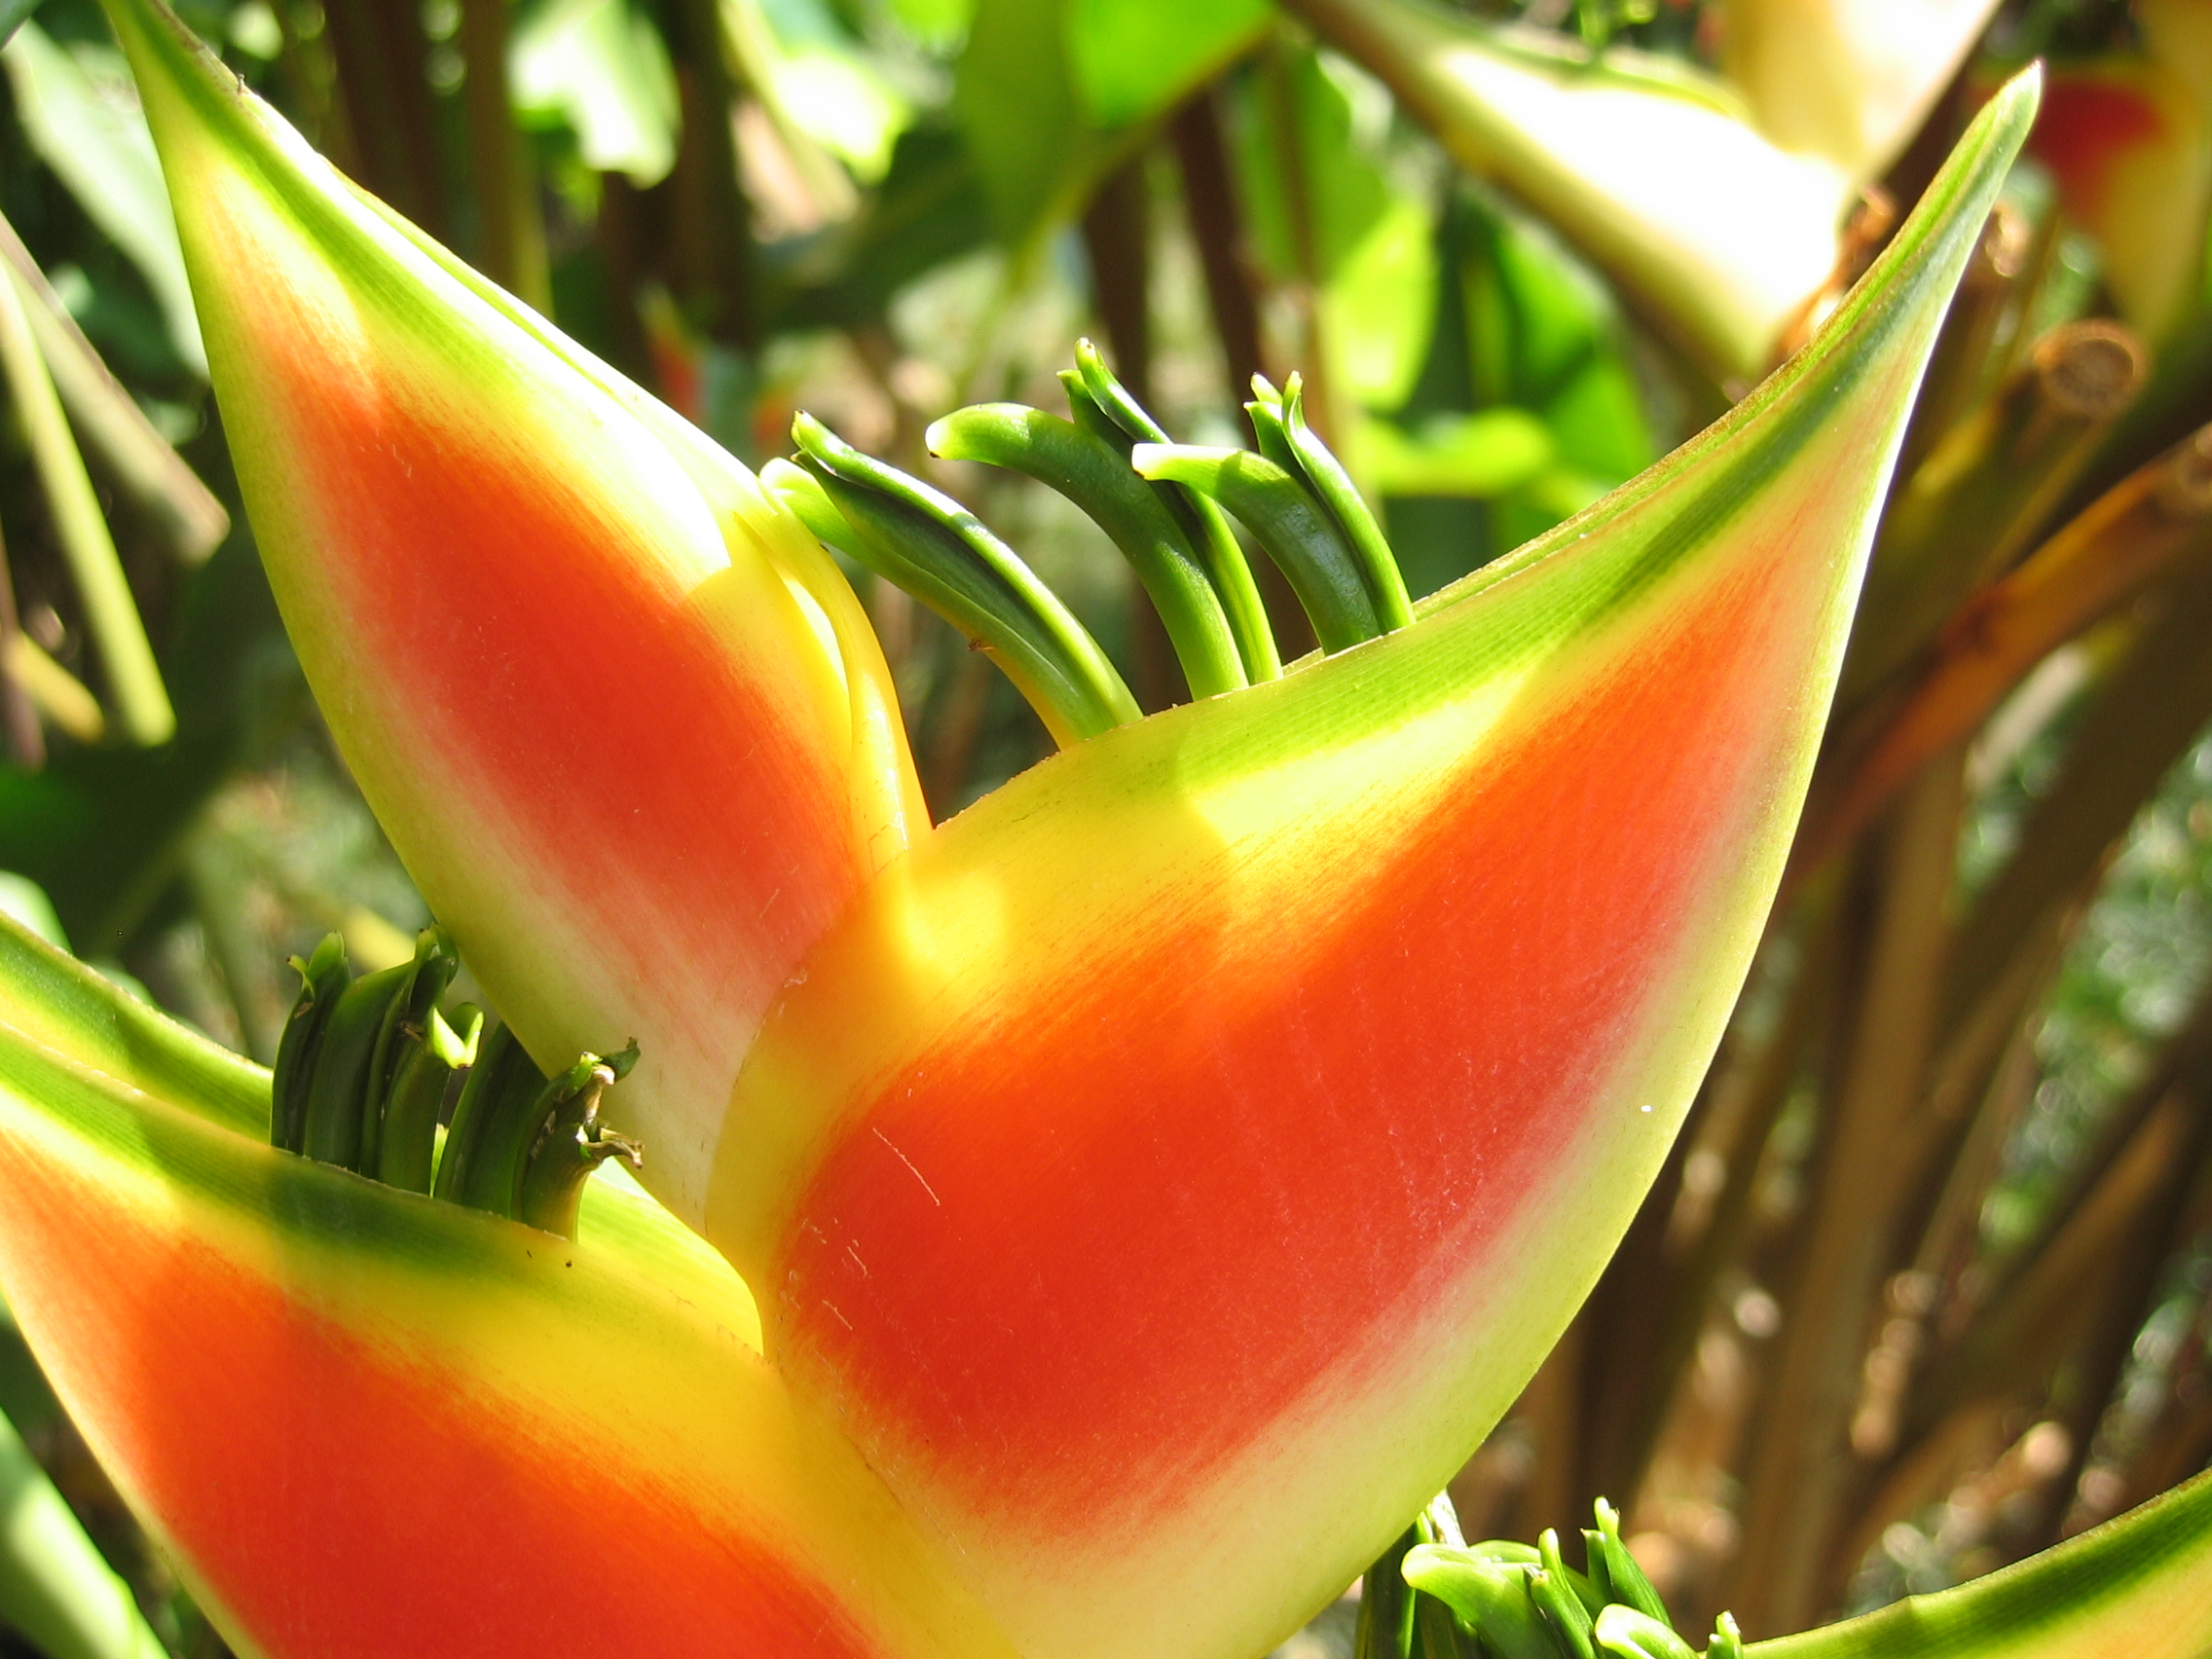 Heliconia wagneriana   - Colored bracts enclosing green flowers